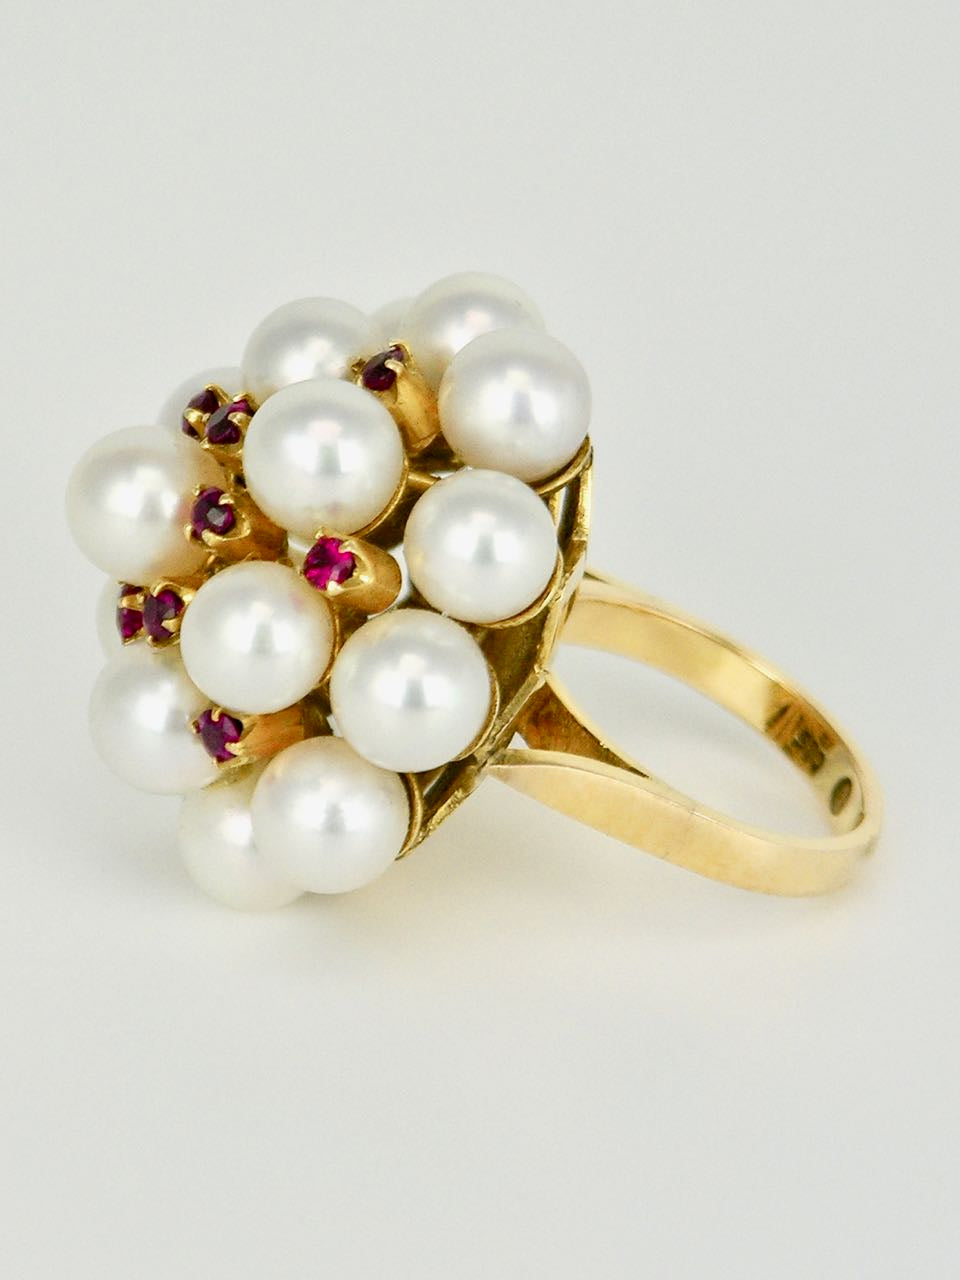 Mikimoto 14k Gold Pearl and Ruby Ring 1960s